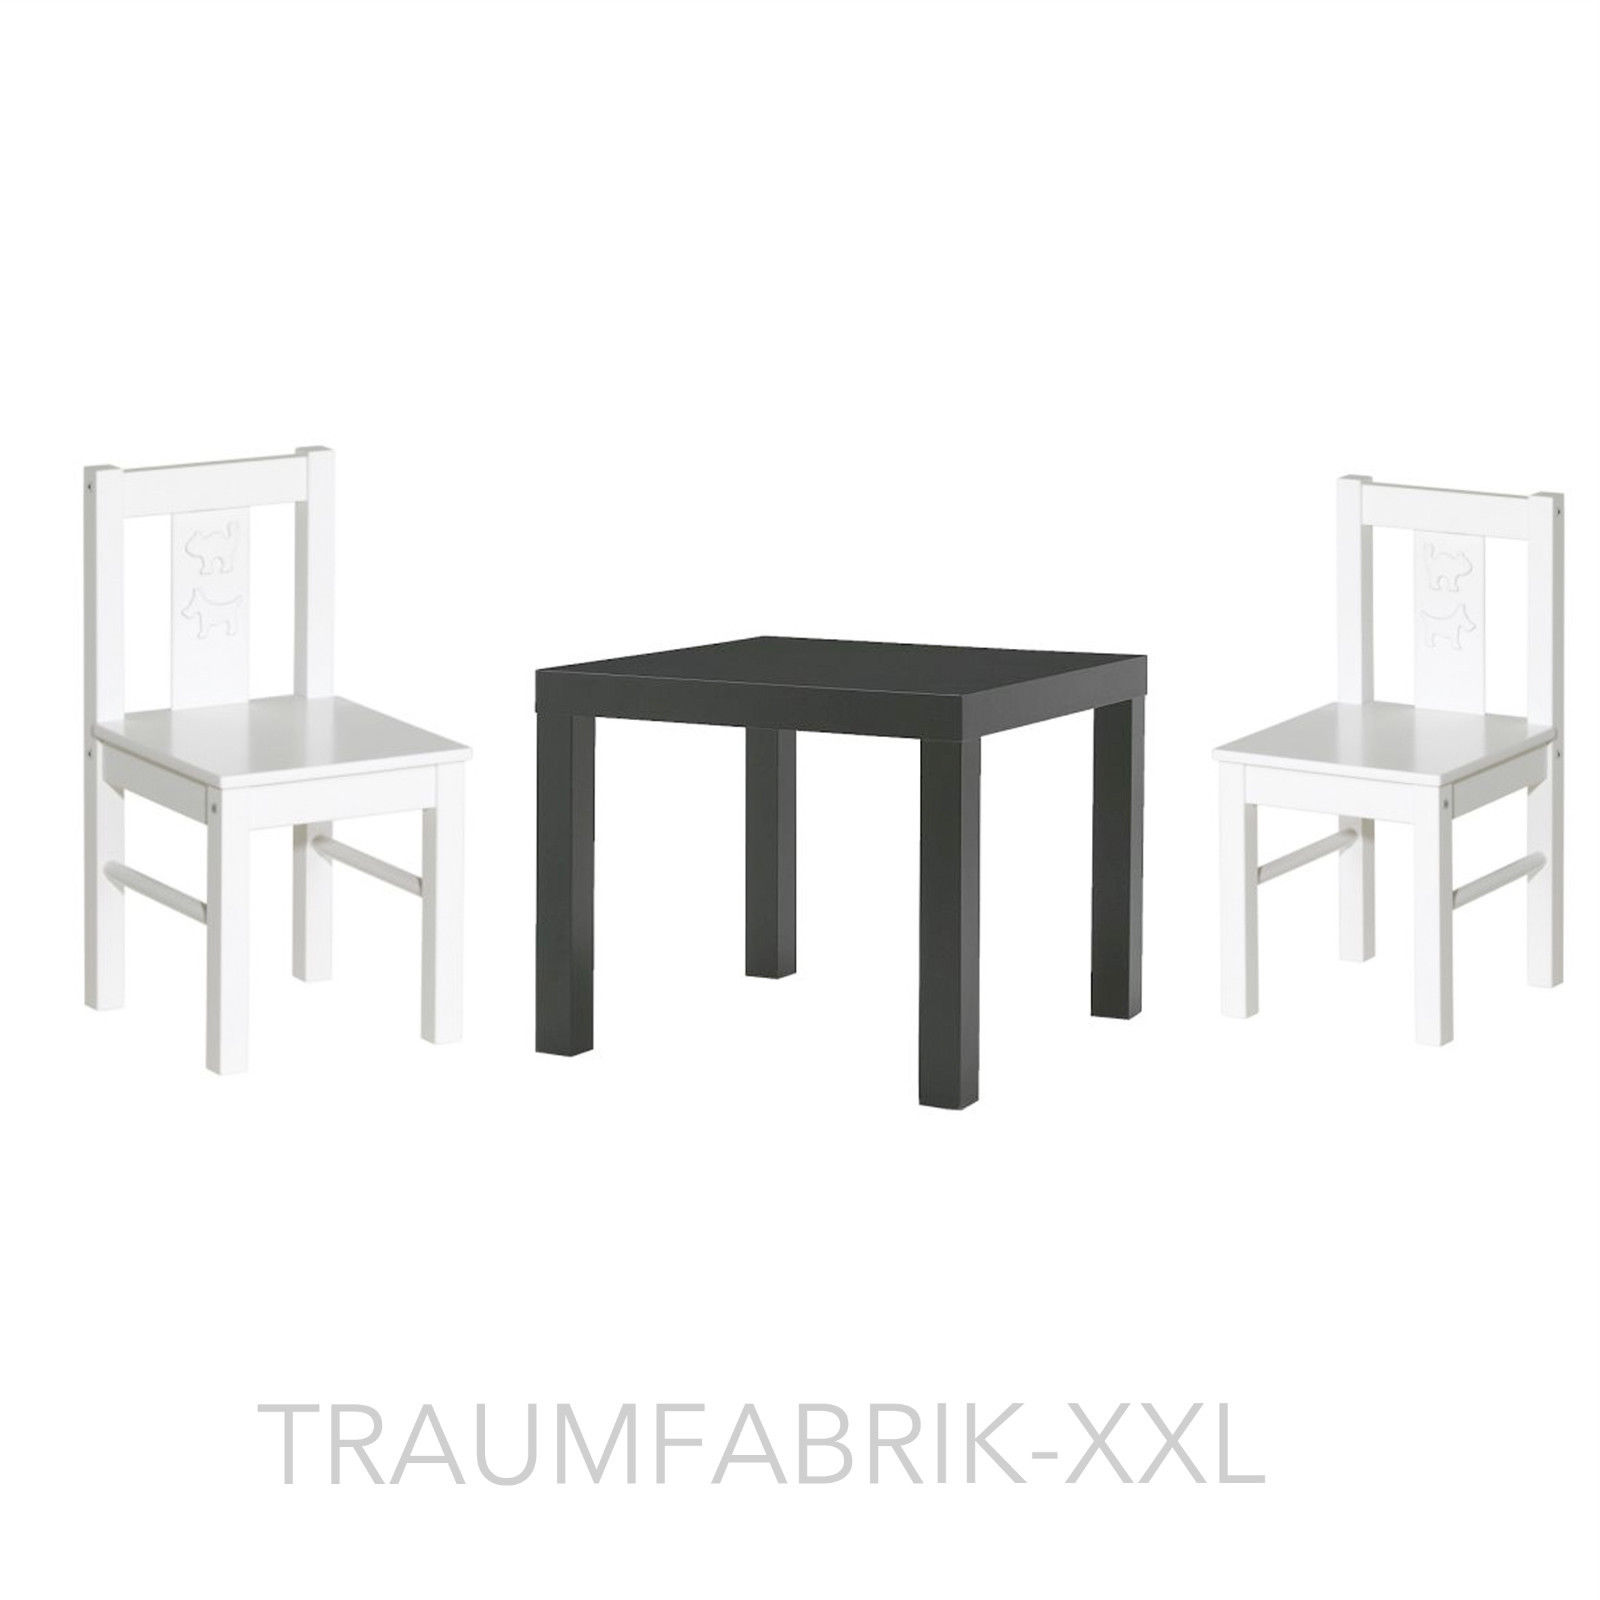 ikea kindersitzgruppe kindertisch 2x kinderstuhl sitzgruppe wei kritter lack traumfabrik xxl. Black Bedroom Furniture Sets. Home Design Ideas